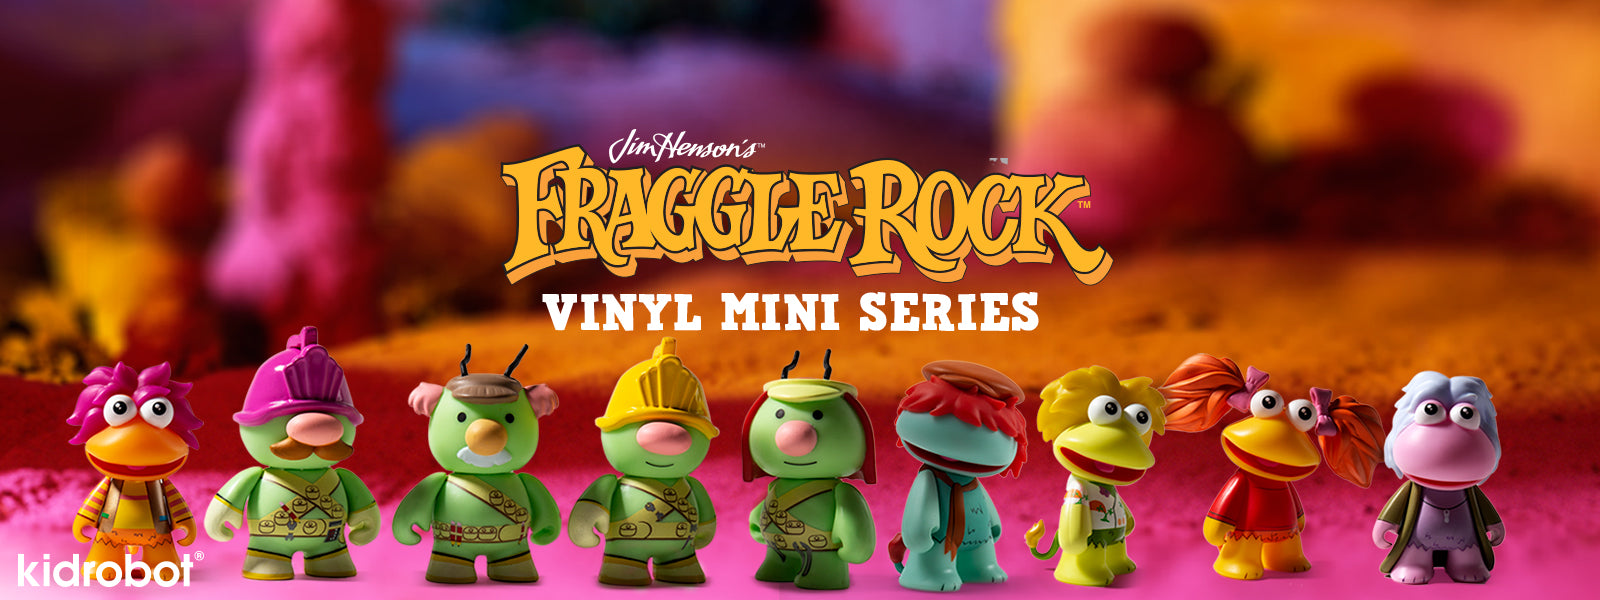 Fraggle Rock x Kidrobot Toys and Art Figures